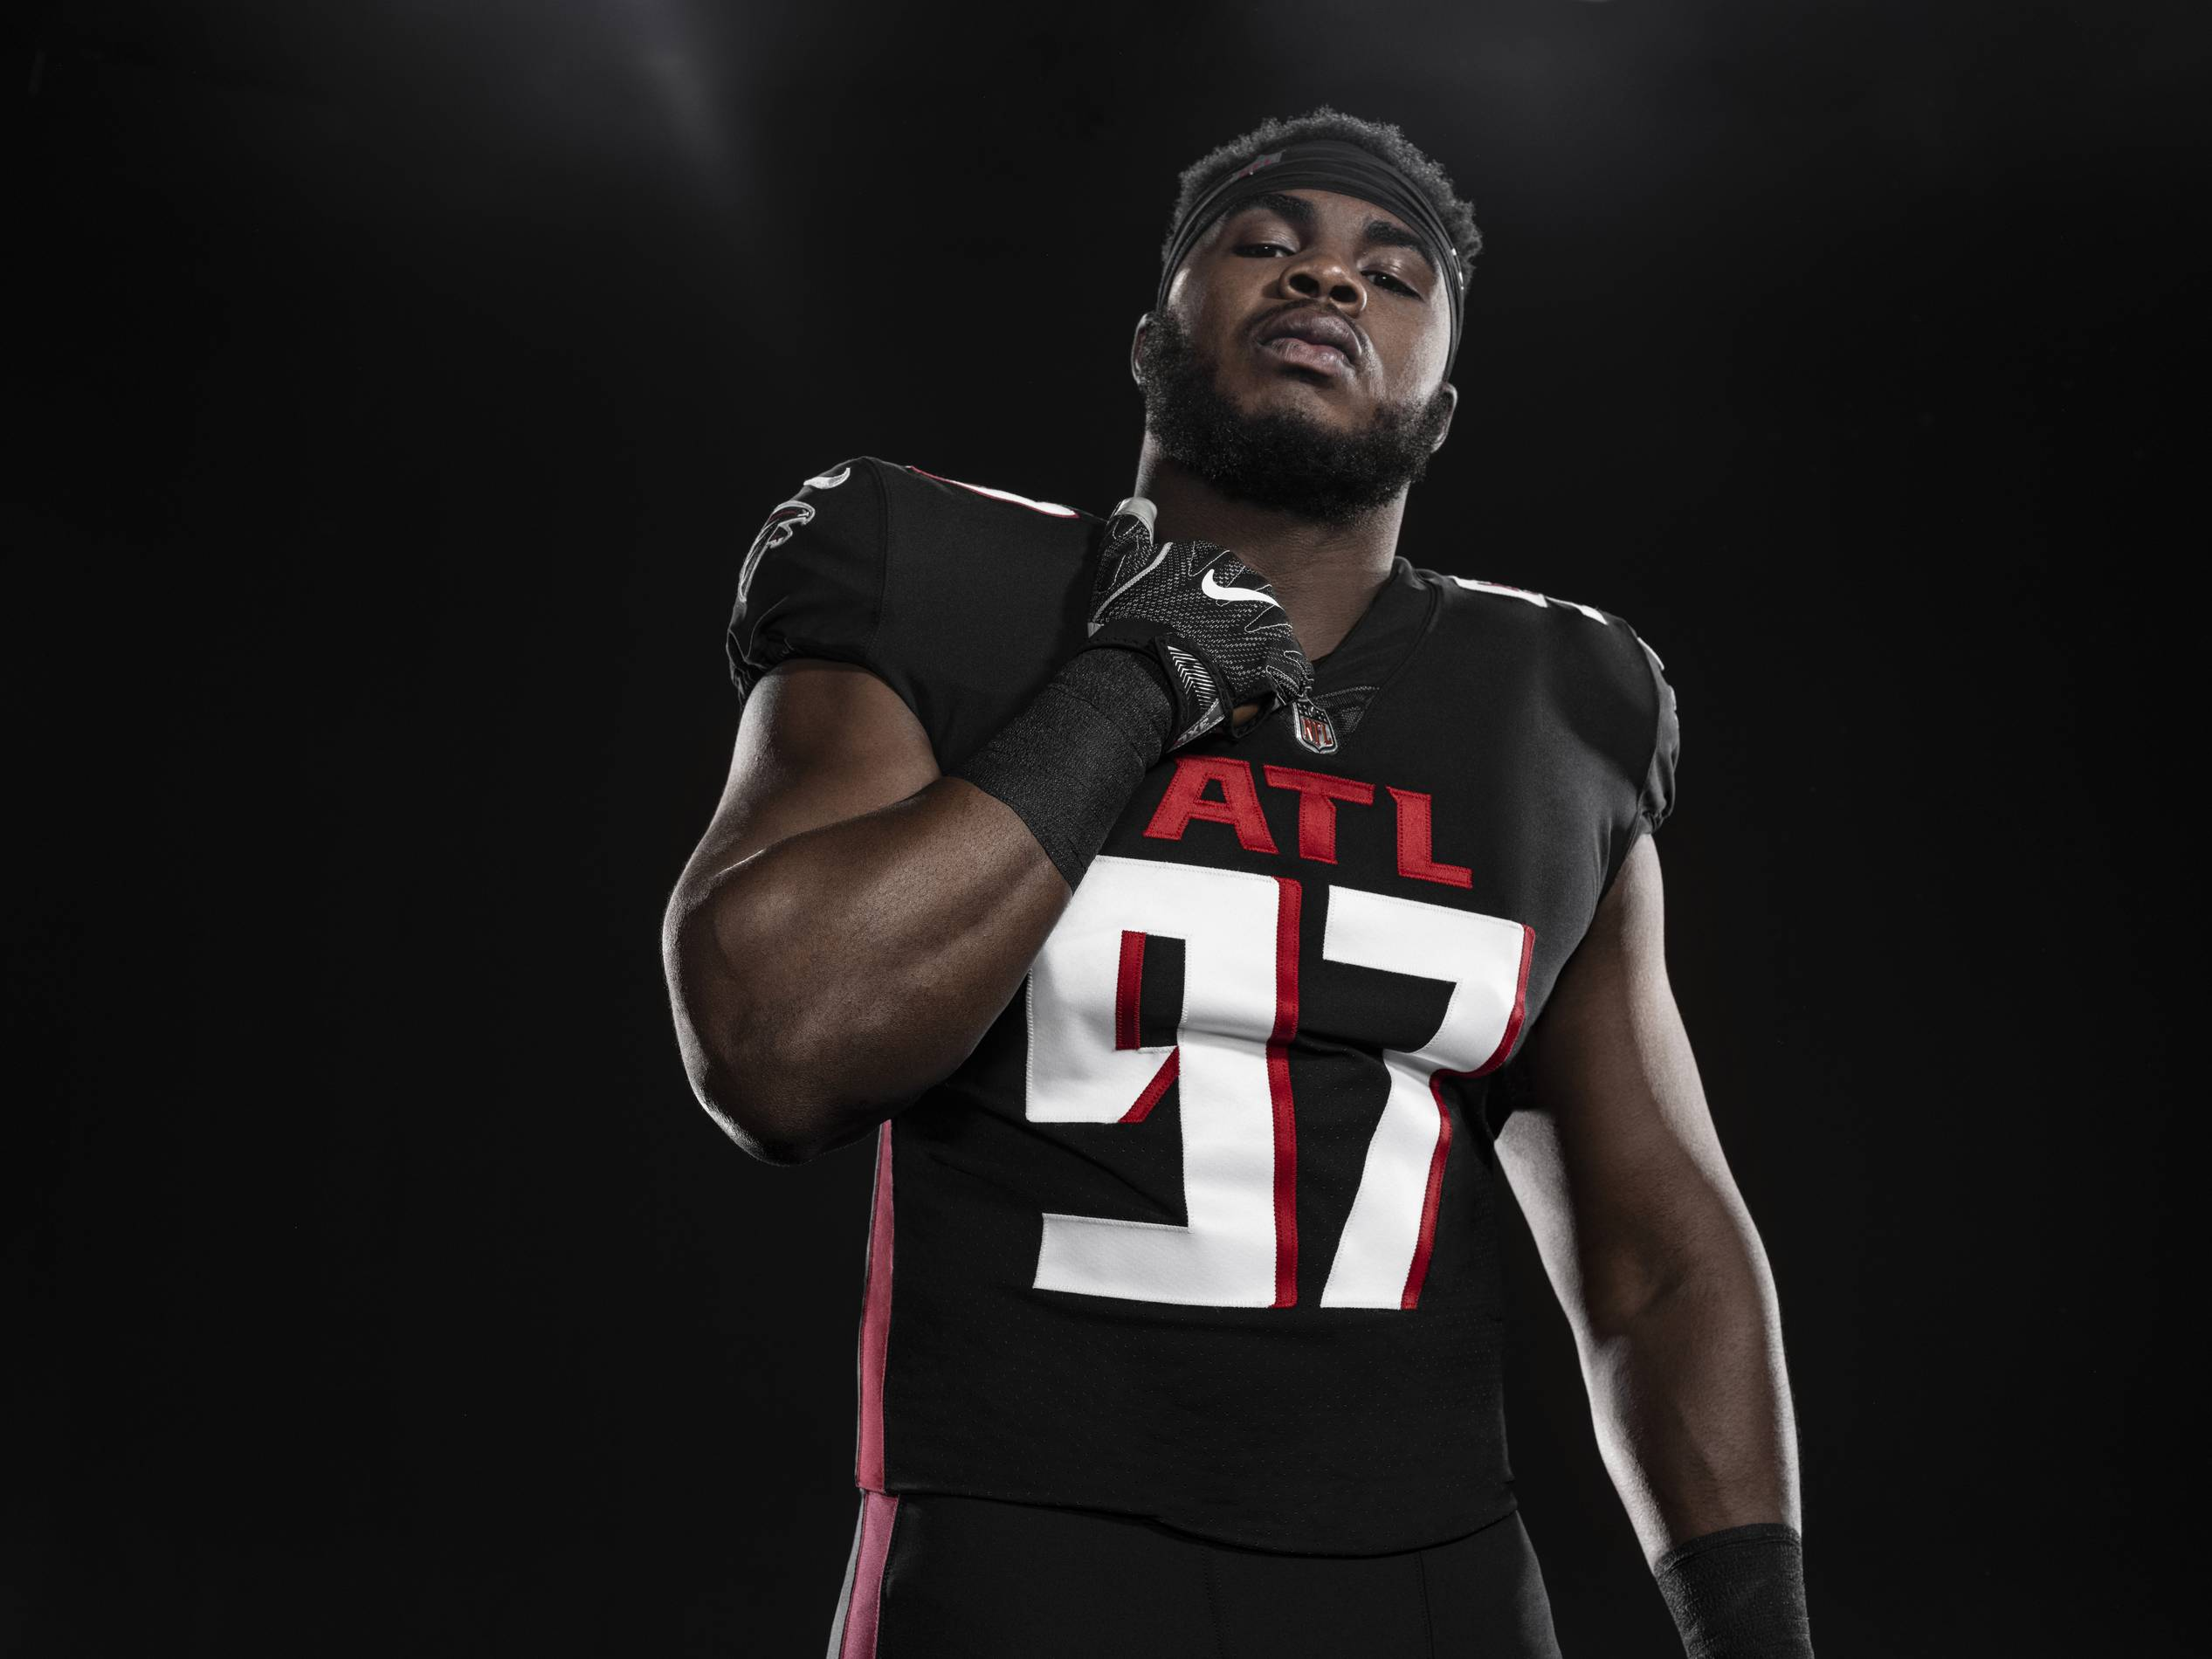 2020_AtlantaFalcons_GradyJarrett_Home_Hero_9361.JPG